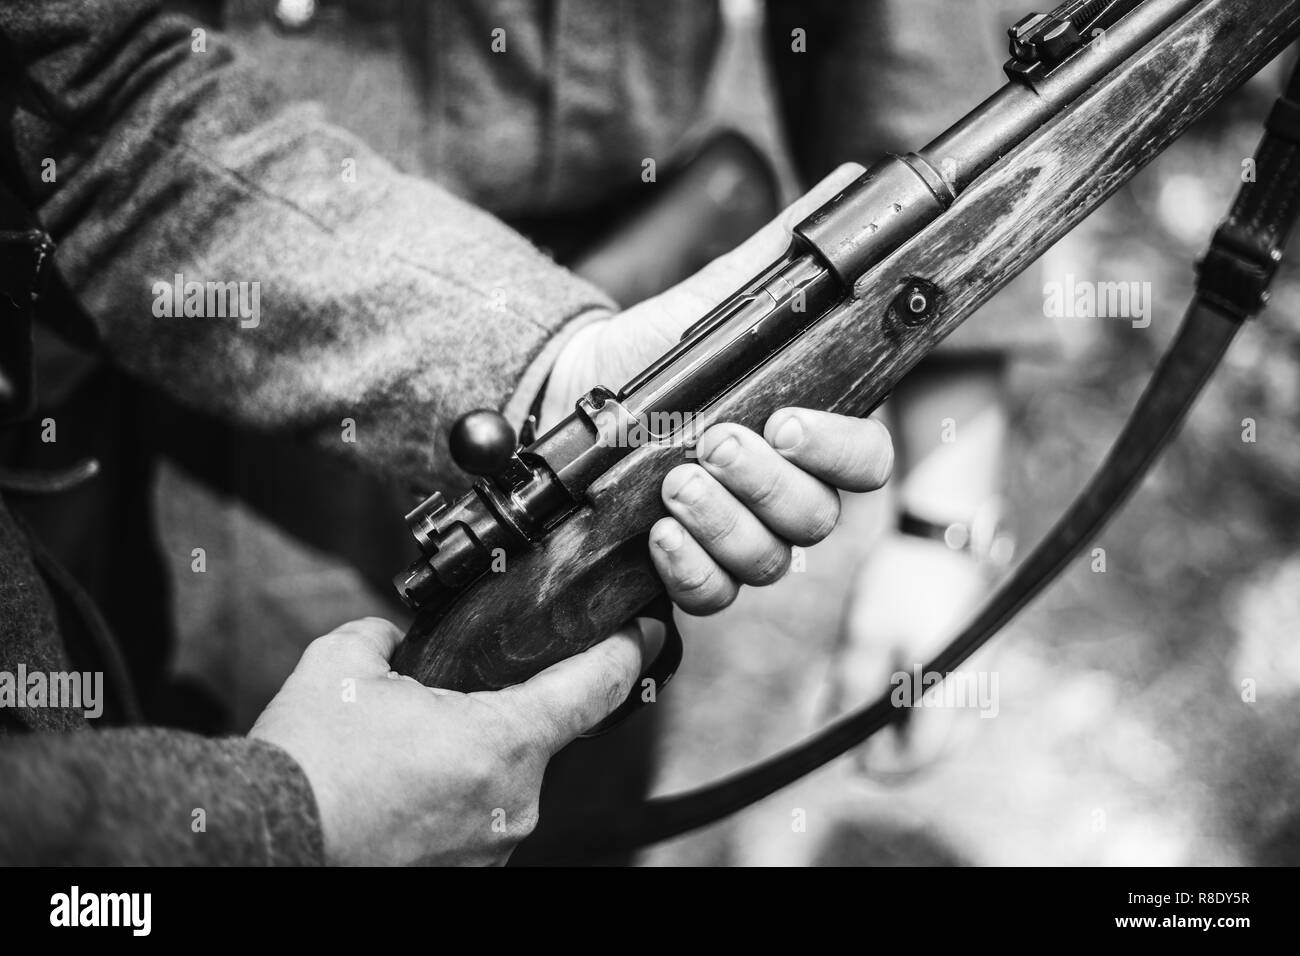 Re-enactor Dressed As World War II German Soldier Holding Rifle. Photo In Black And White Colors. Soldier Holding Weapon. German Military Ammunition O - Stock Image